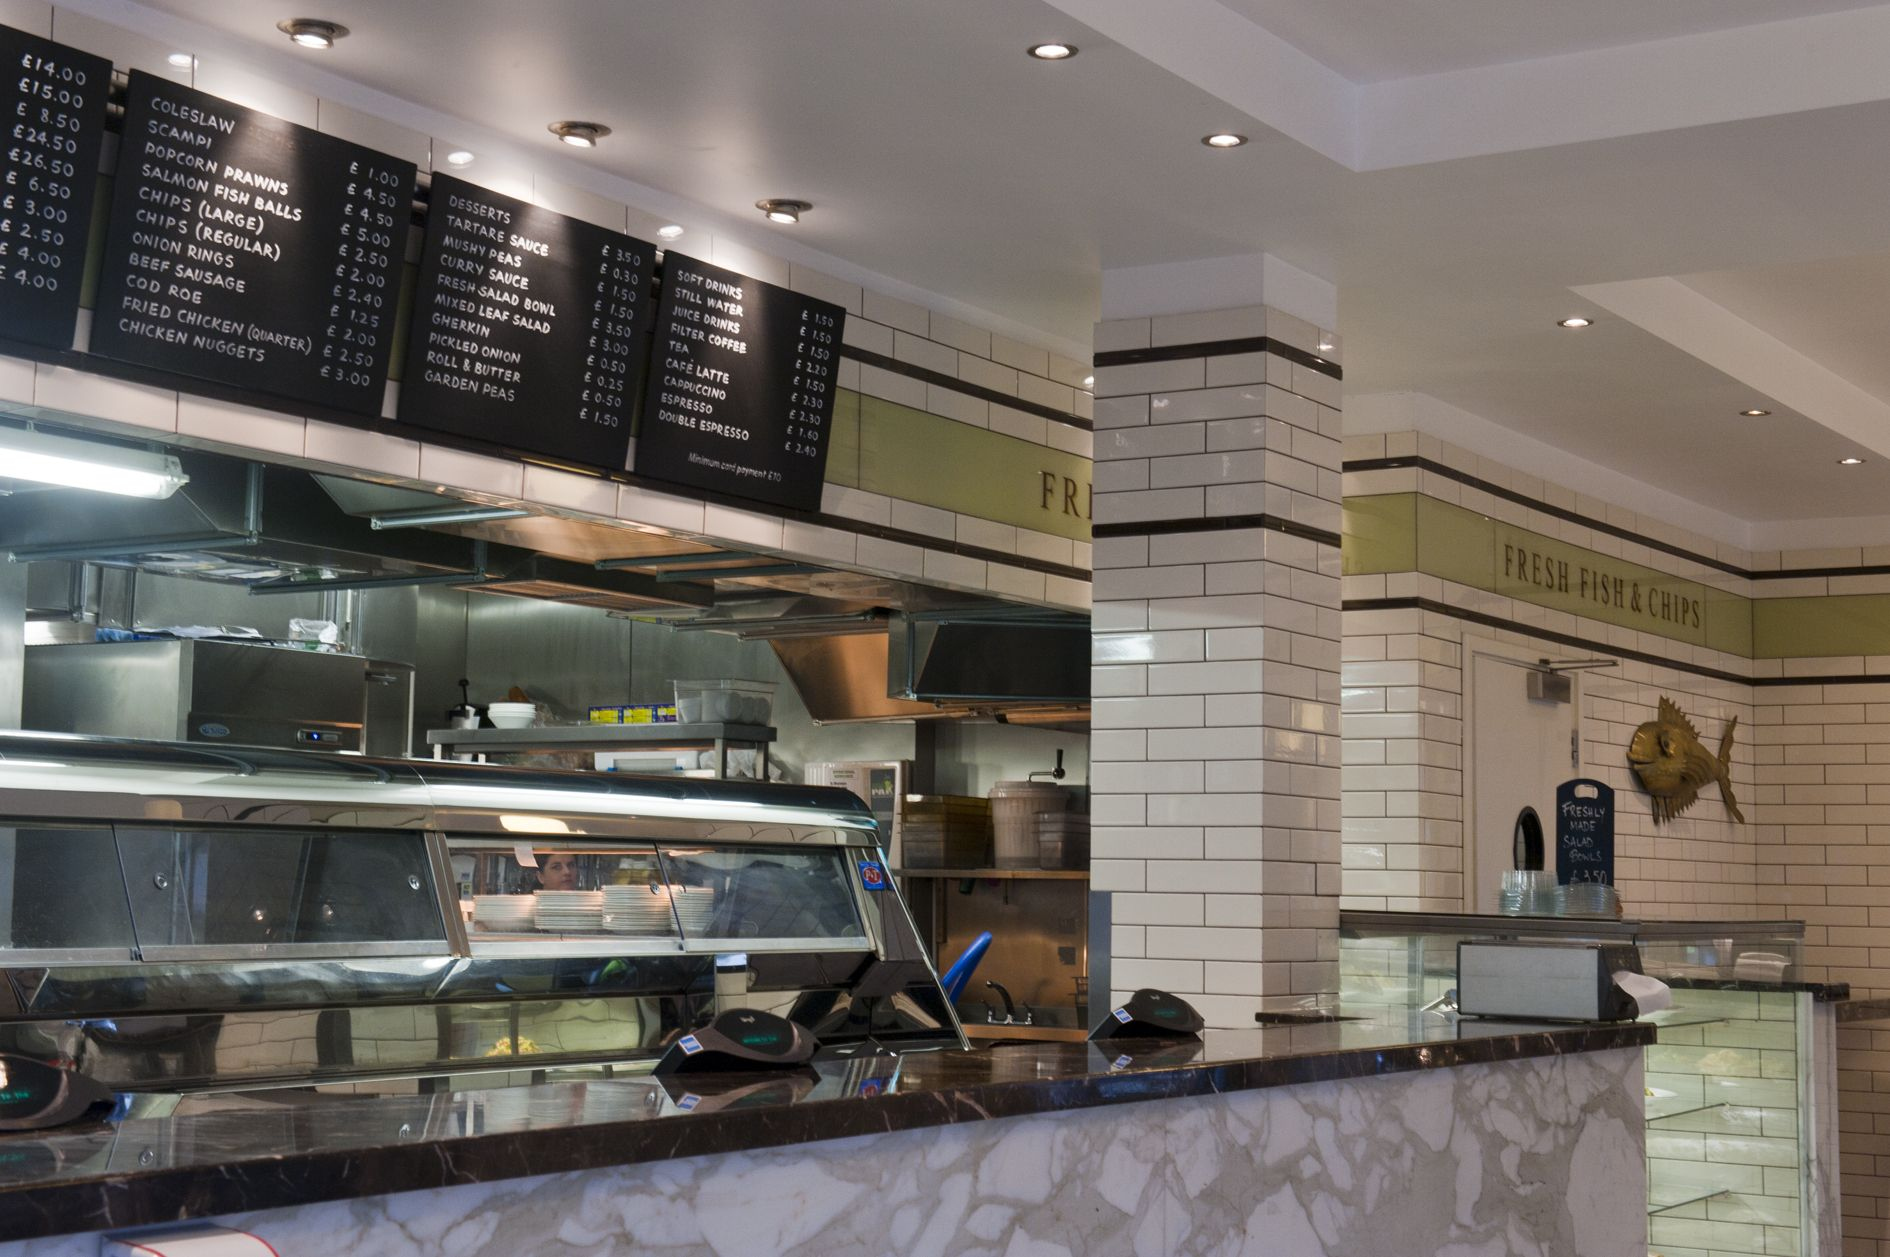 Best Fish And Chips London Sea Shell Of Lisson Grove Has Been Around For 30 Years There Is A Restaurant Fish And Chip Shop Fish And Chips Best Fish And Chips